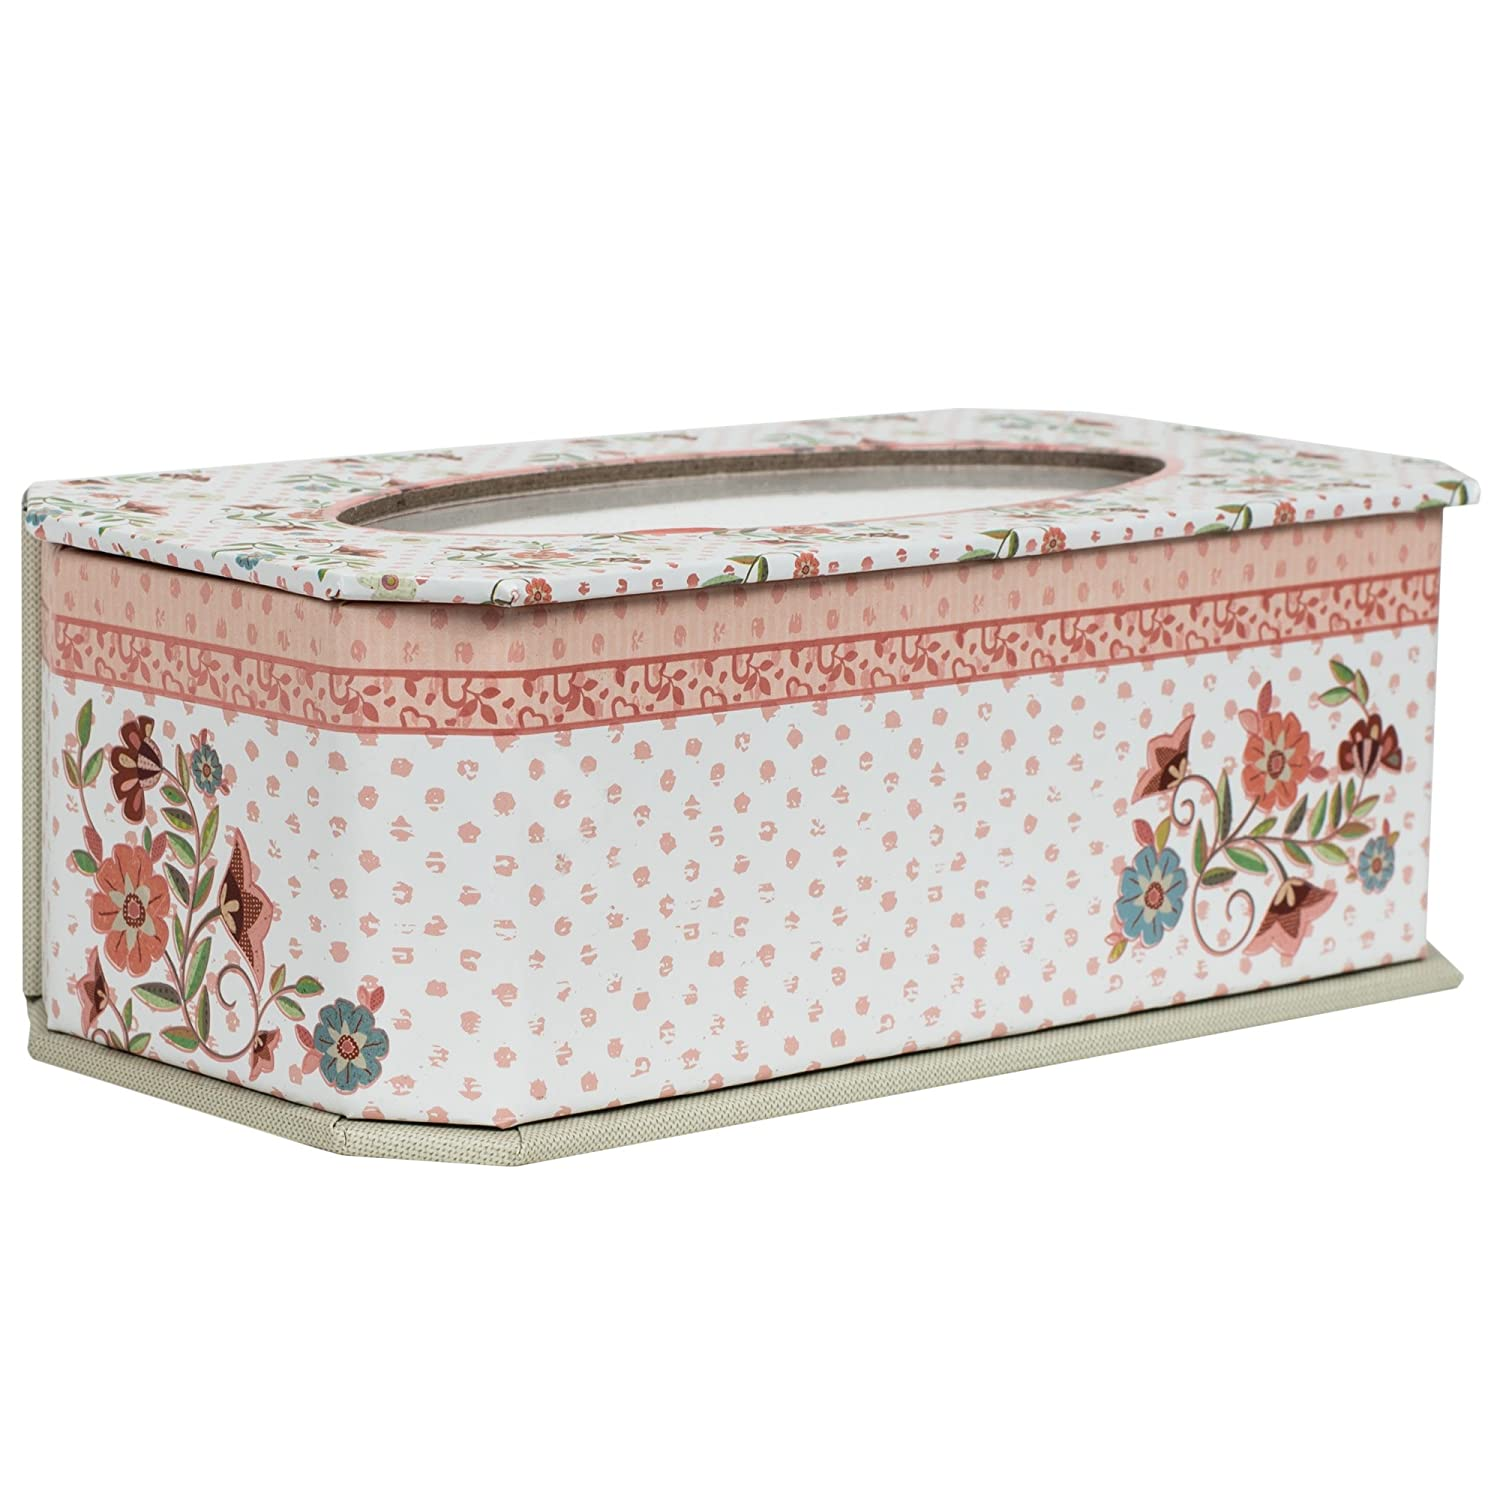 Cottage Garden Some People Make World Special Polka Dot Floral Chic Jewelry Music Box Plays Thats What Friends are for